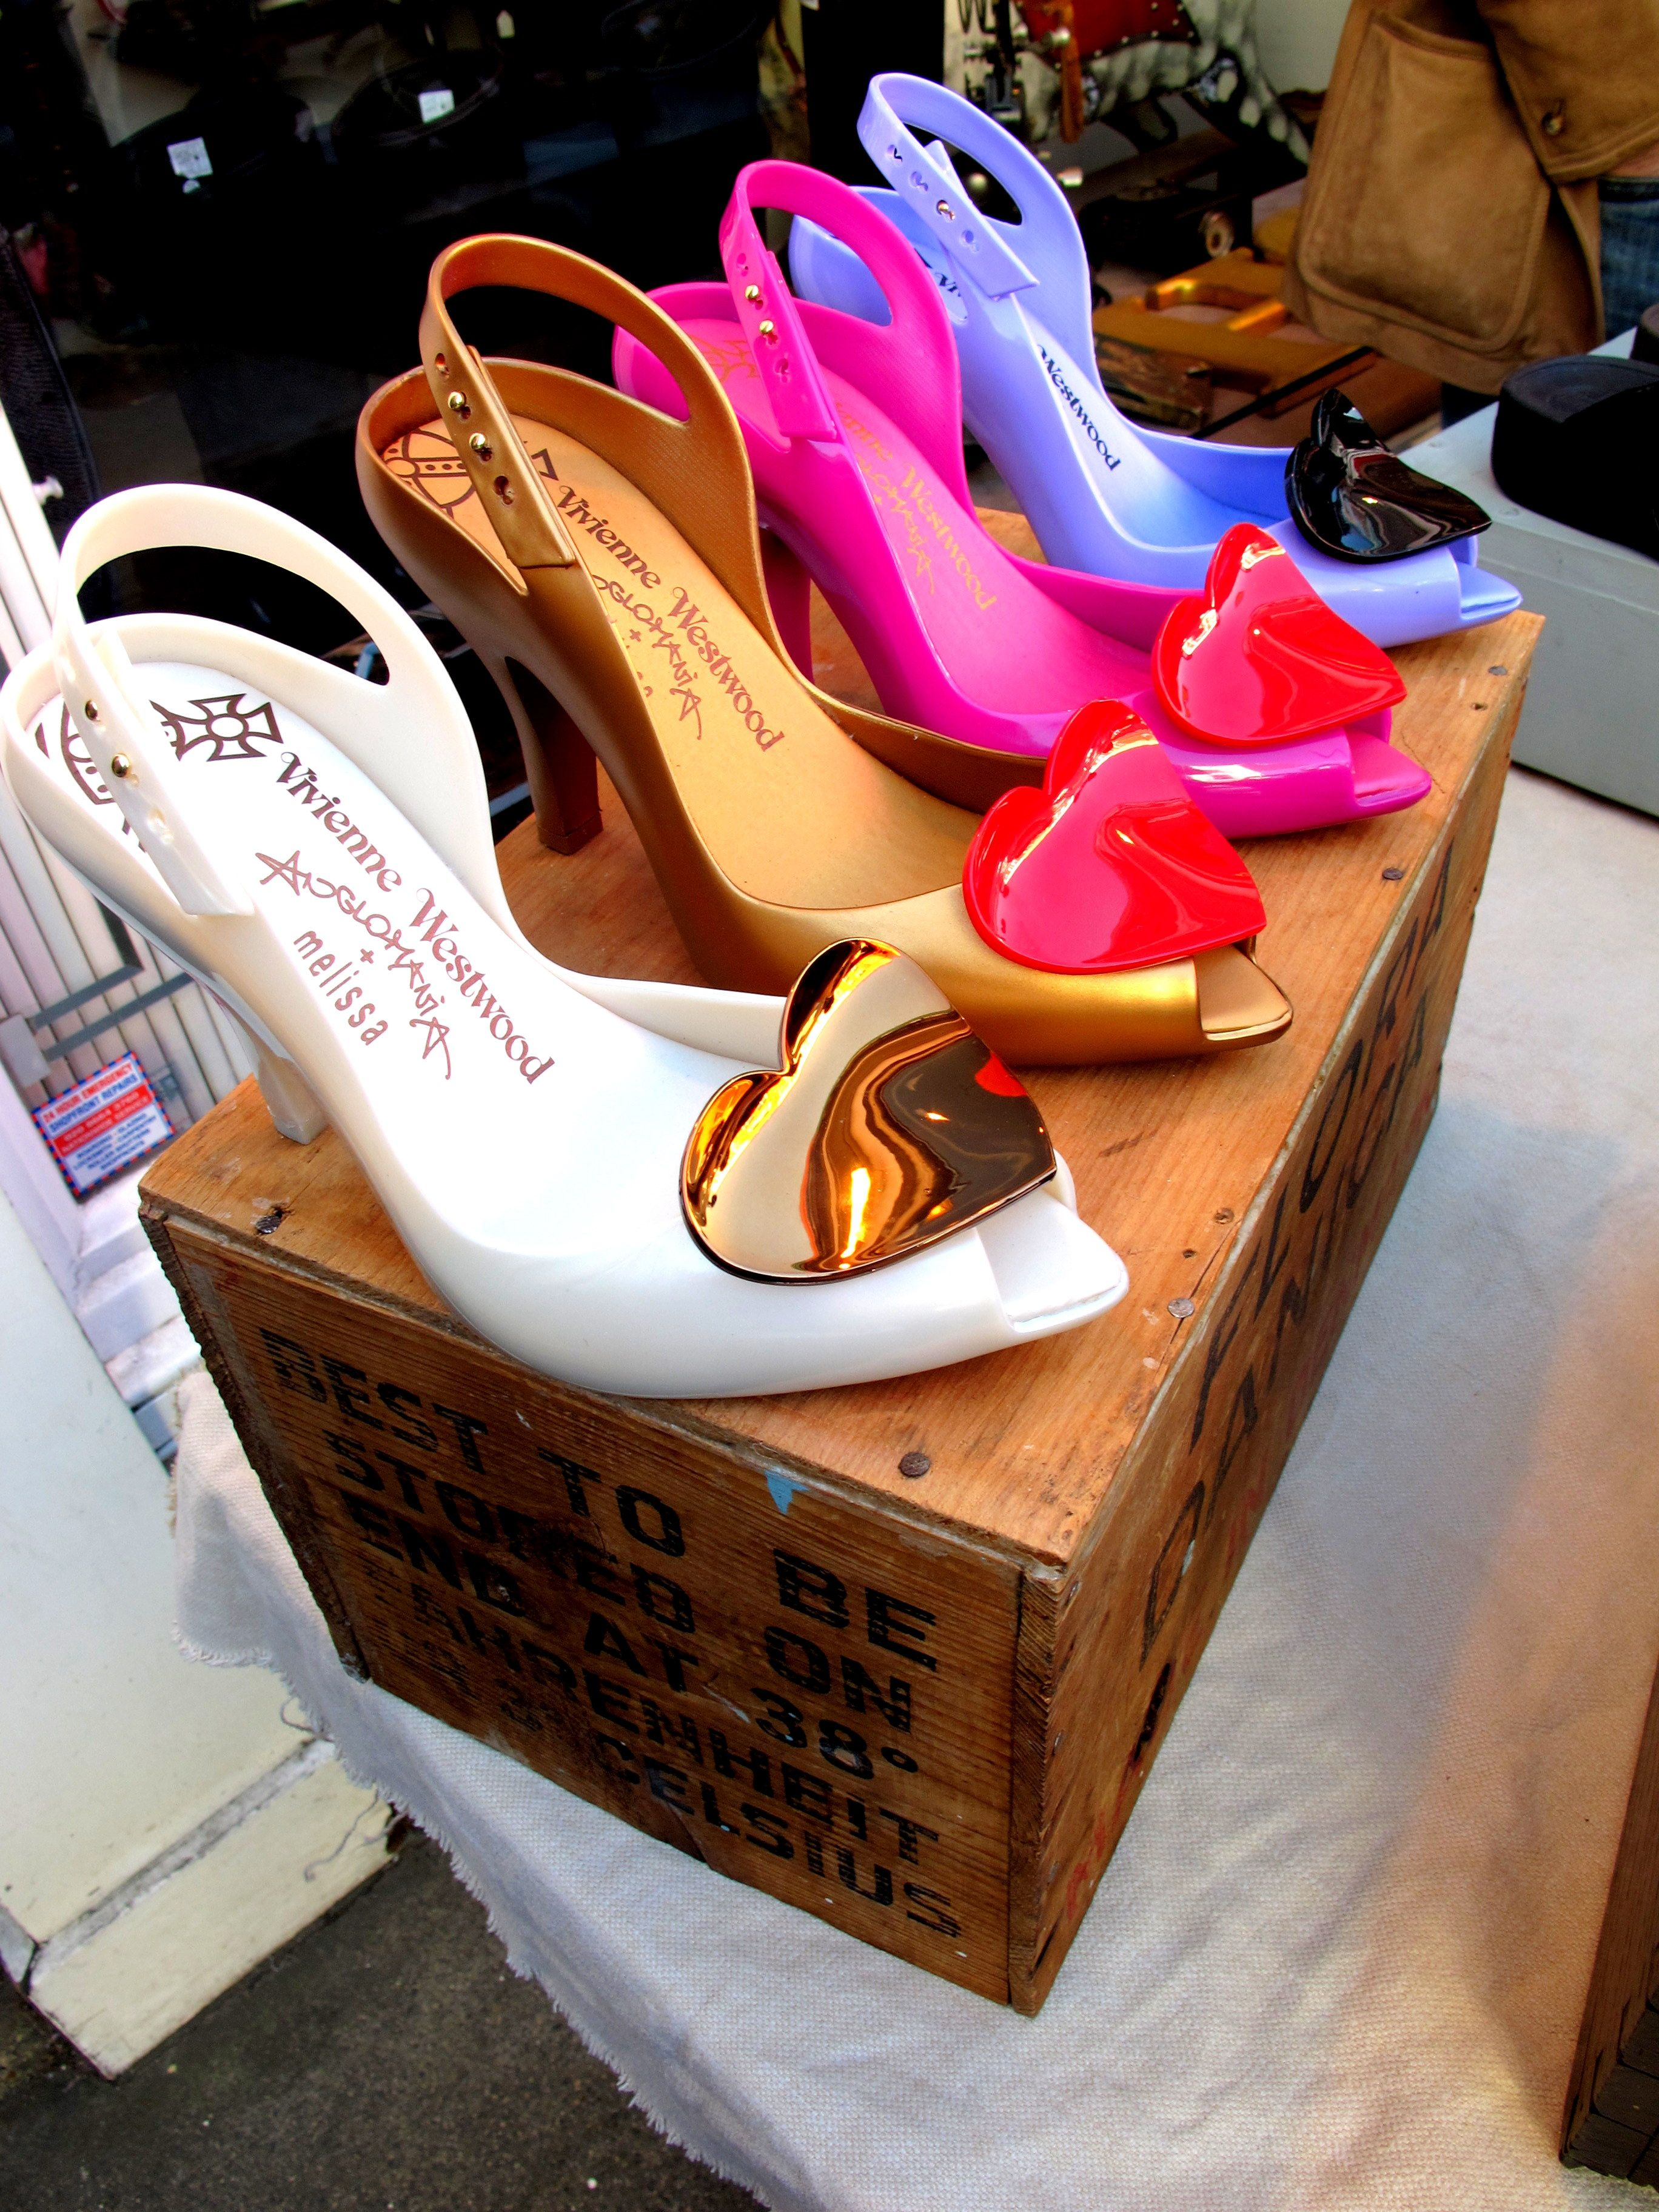 Had To Take A Photo Of These Brilliant Vivianne Westwood Heels Vivienne Westwood Melissa Shoes Melissa Shoes Shoes